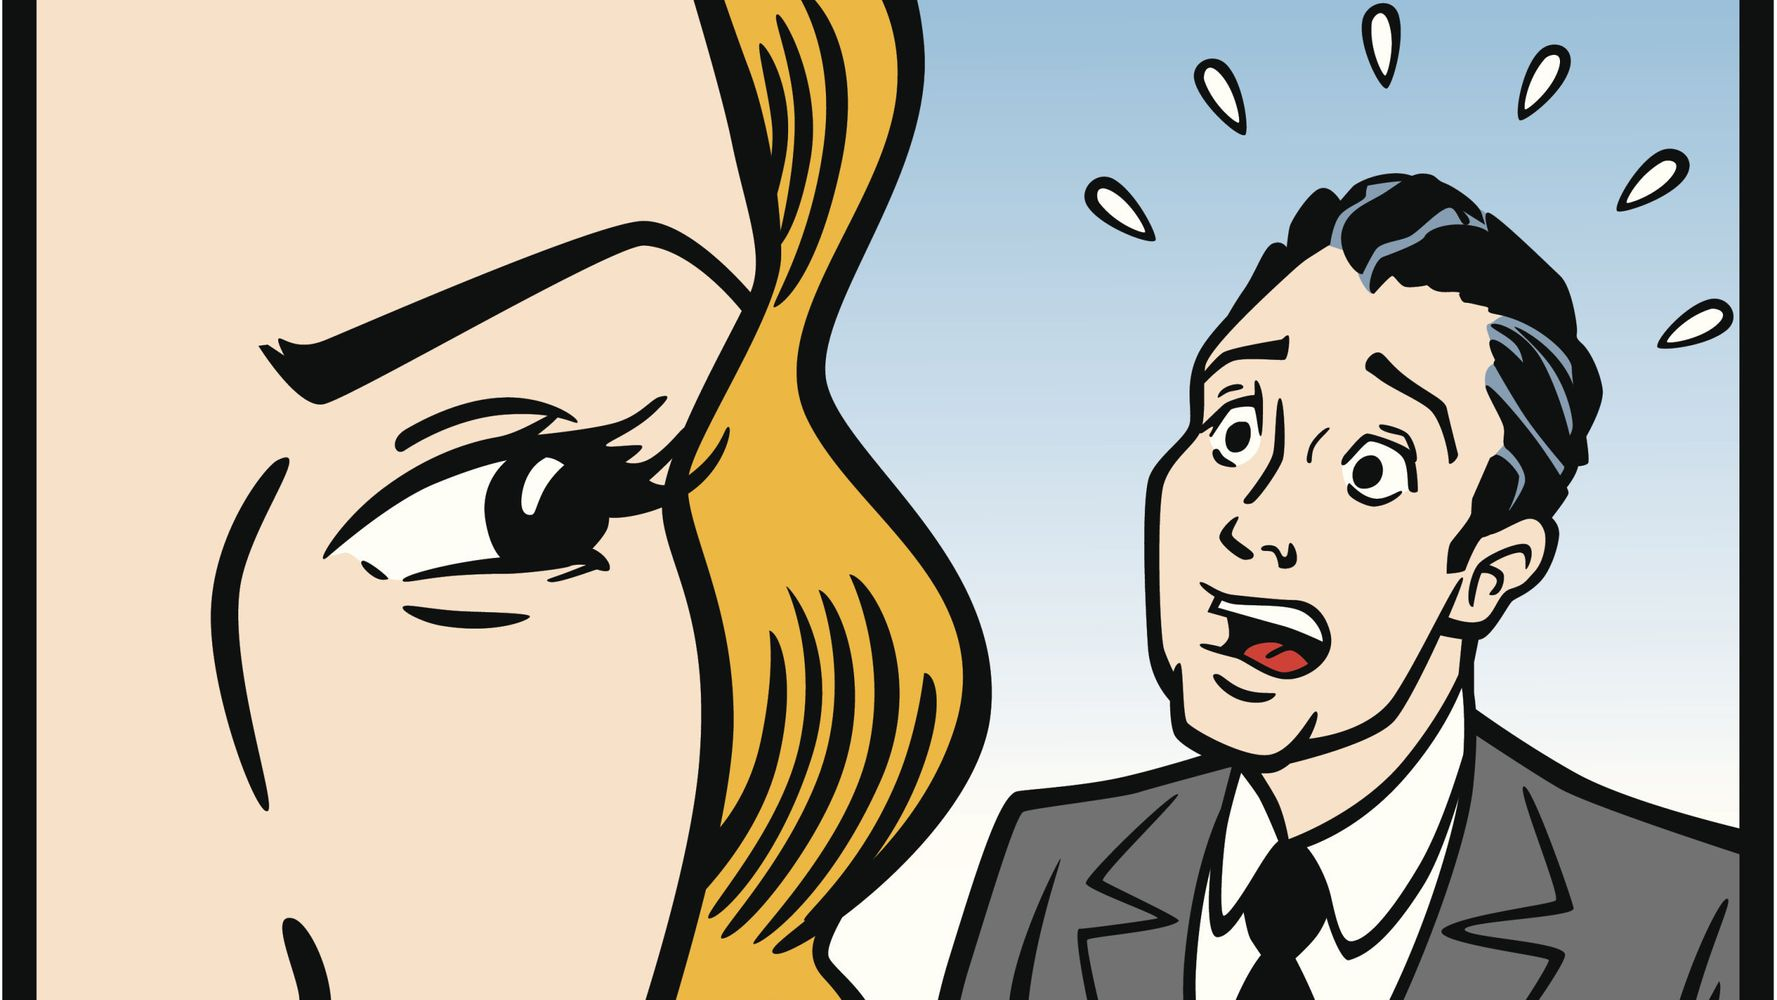 8 Relationship Problems You Just Can't Fix | HuffPost Life